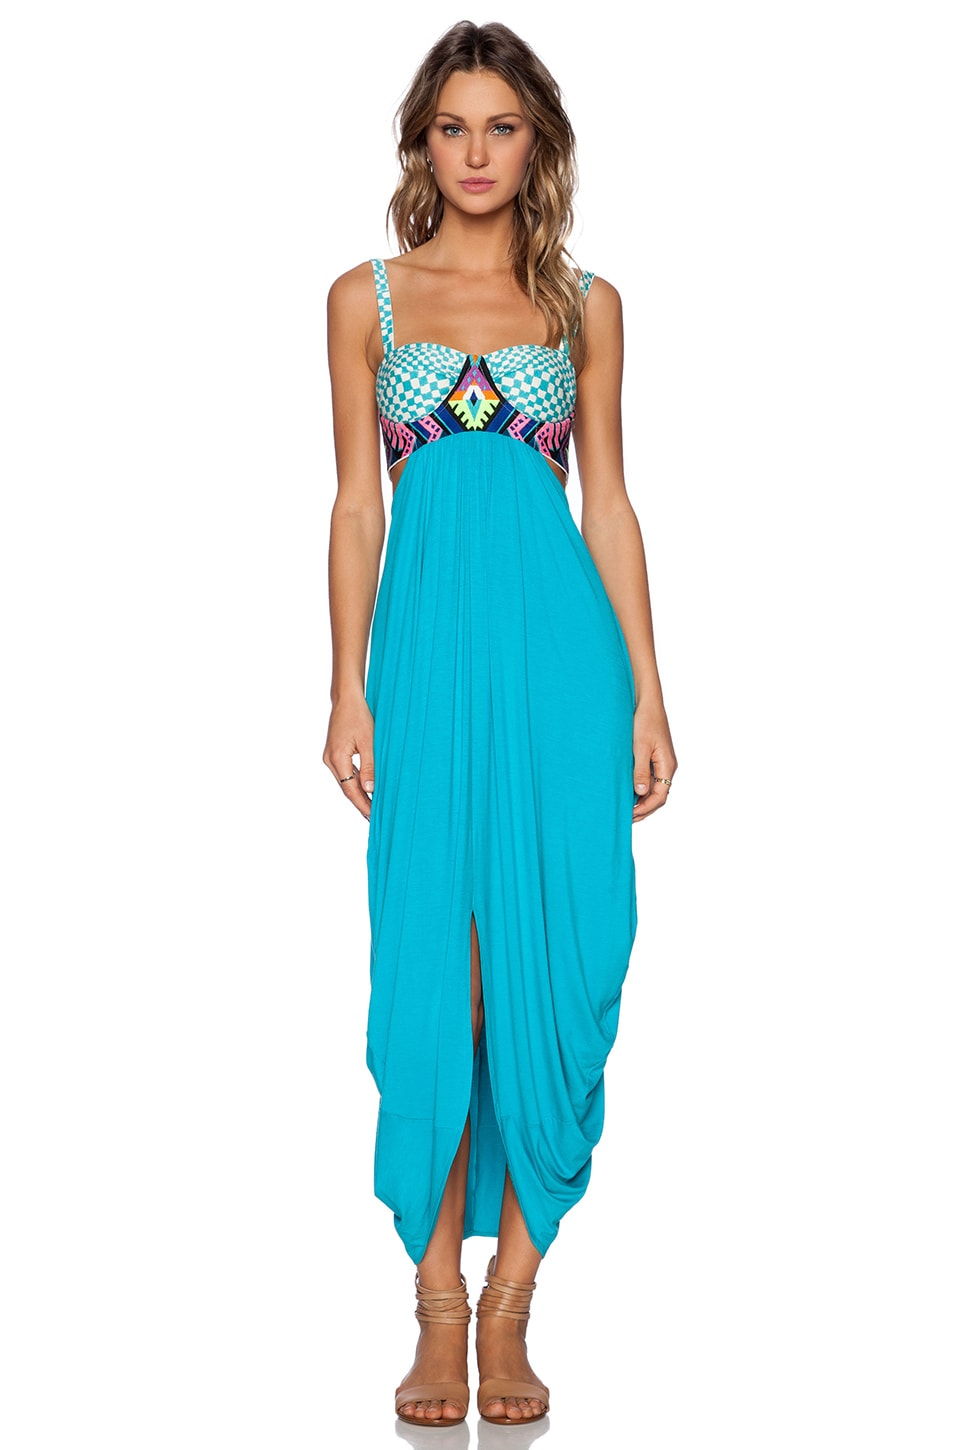 Mara Hoffman Embroidered Maxi Dress in Turqouise | REVOLVE